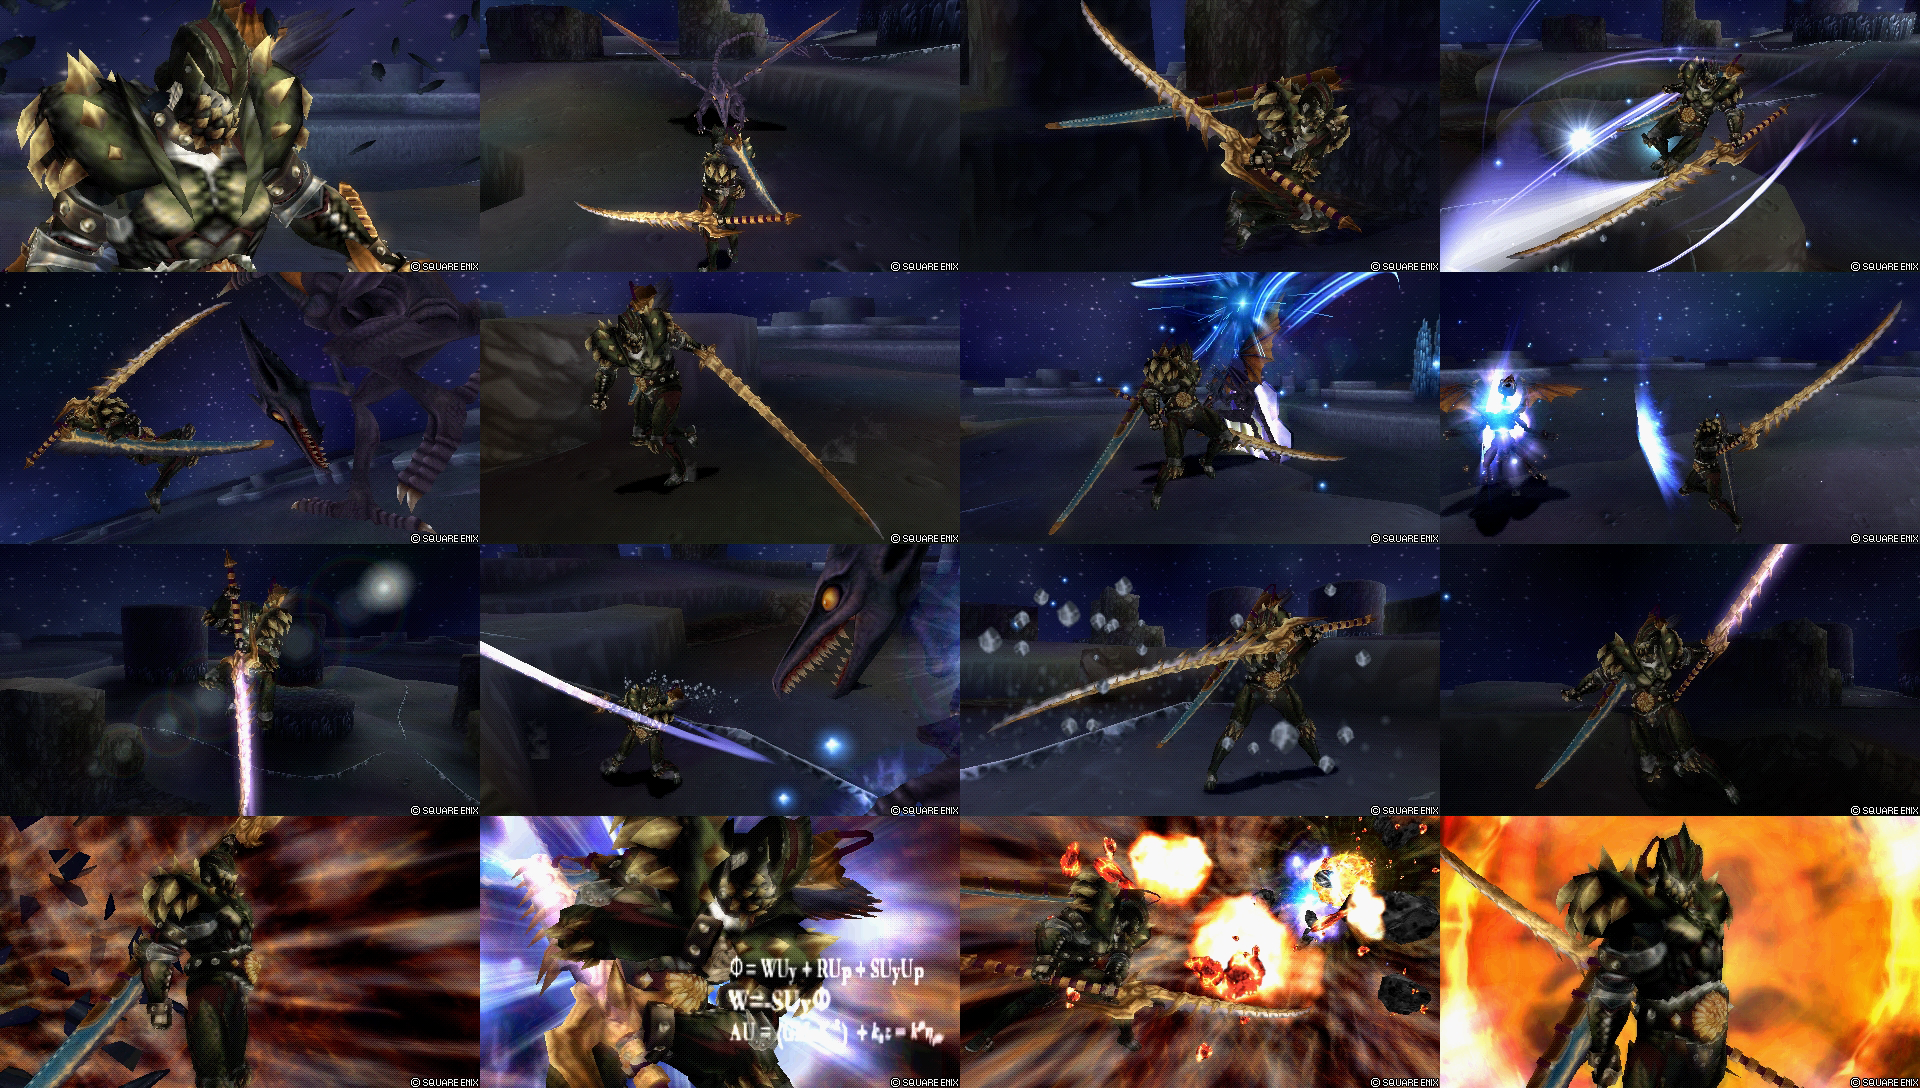 dissidia_012_mods__vangis_hunter__mhtri_